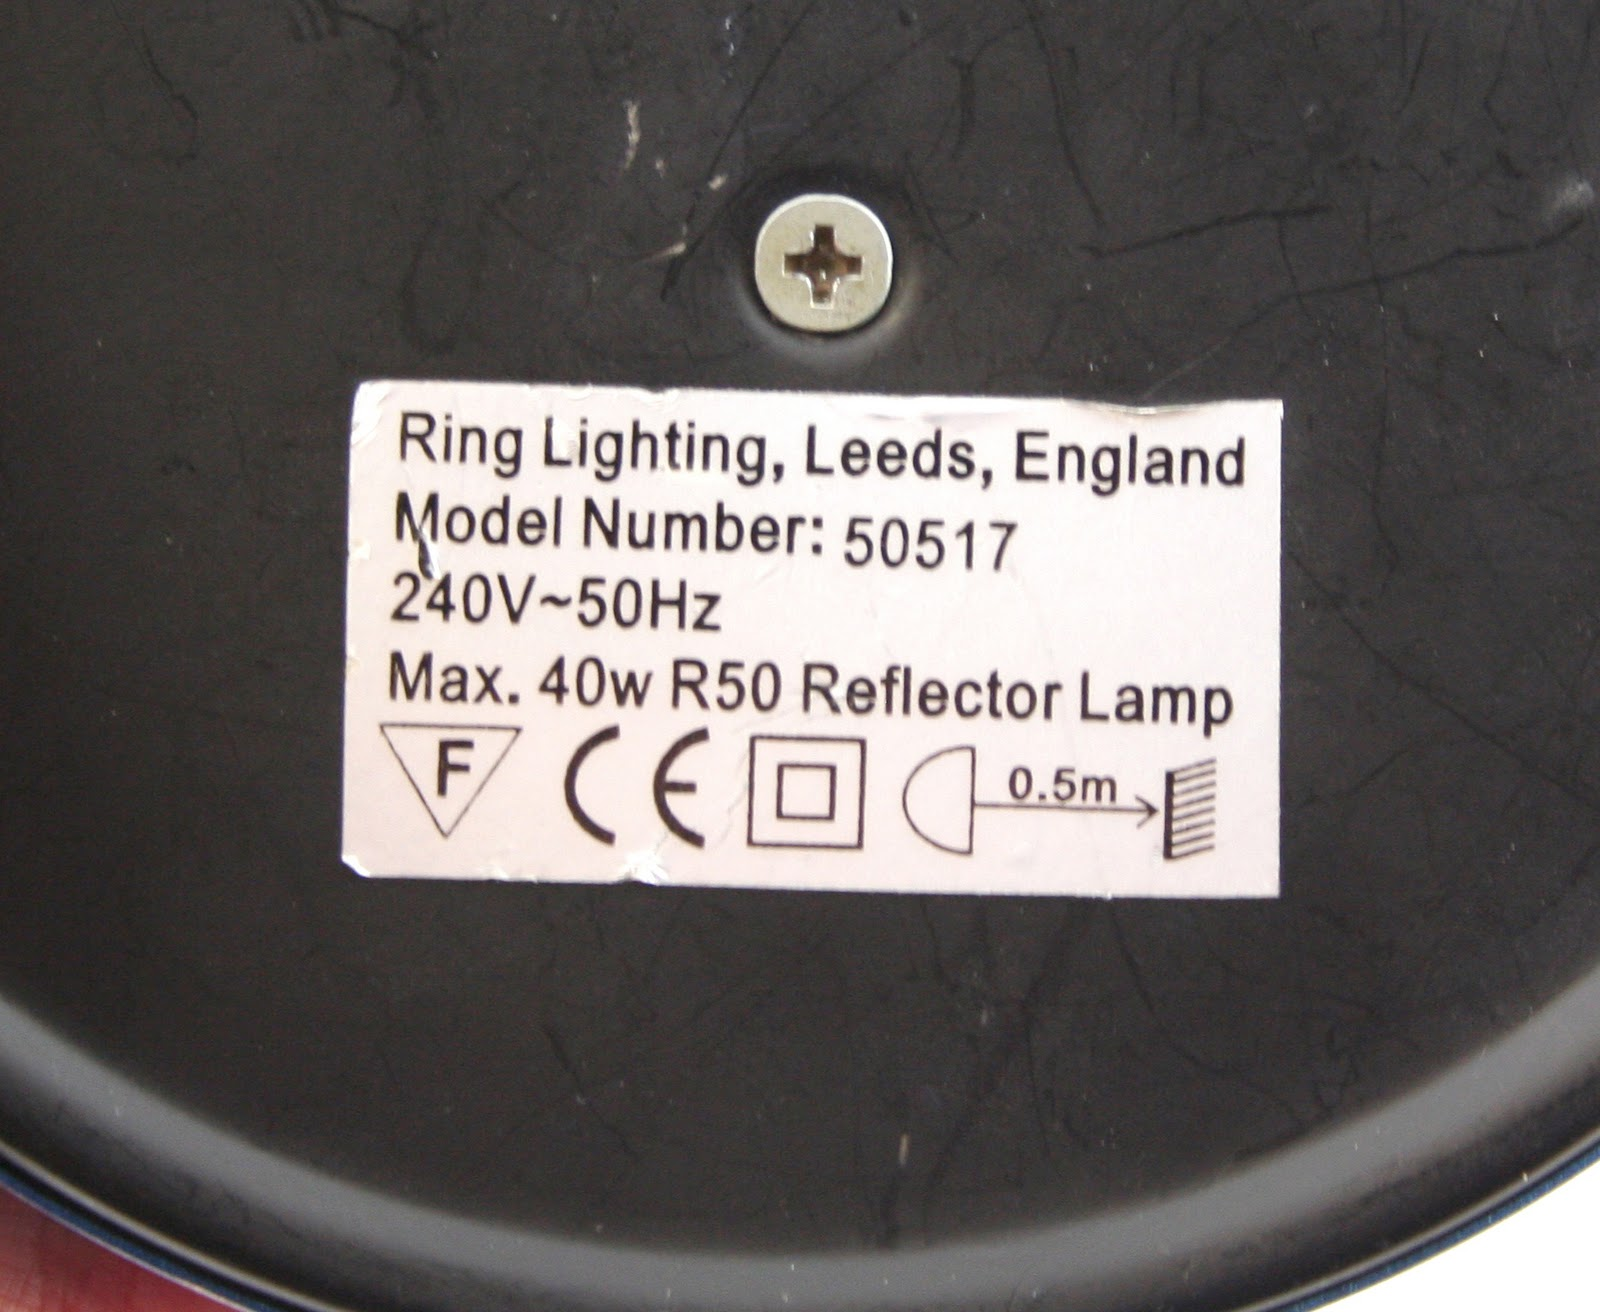 Anglepoise 1227 lamp electrical safety UK earthing laws. – Relight Lamps